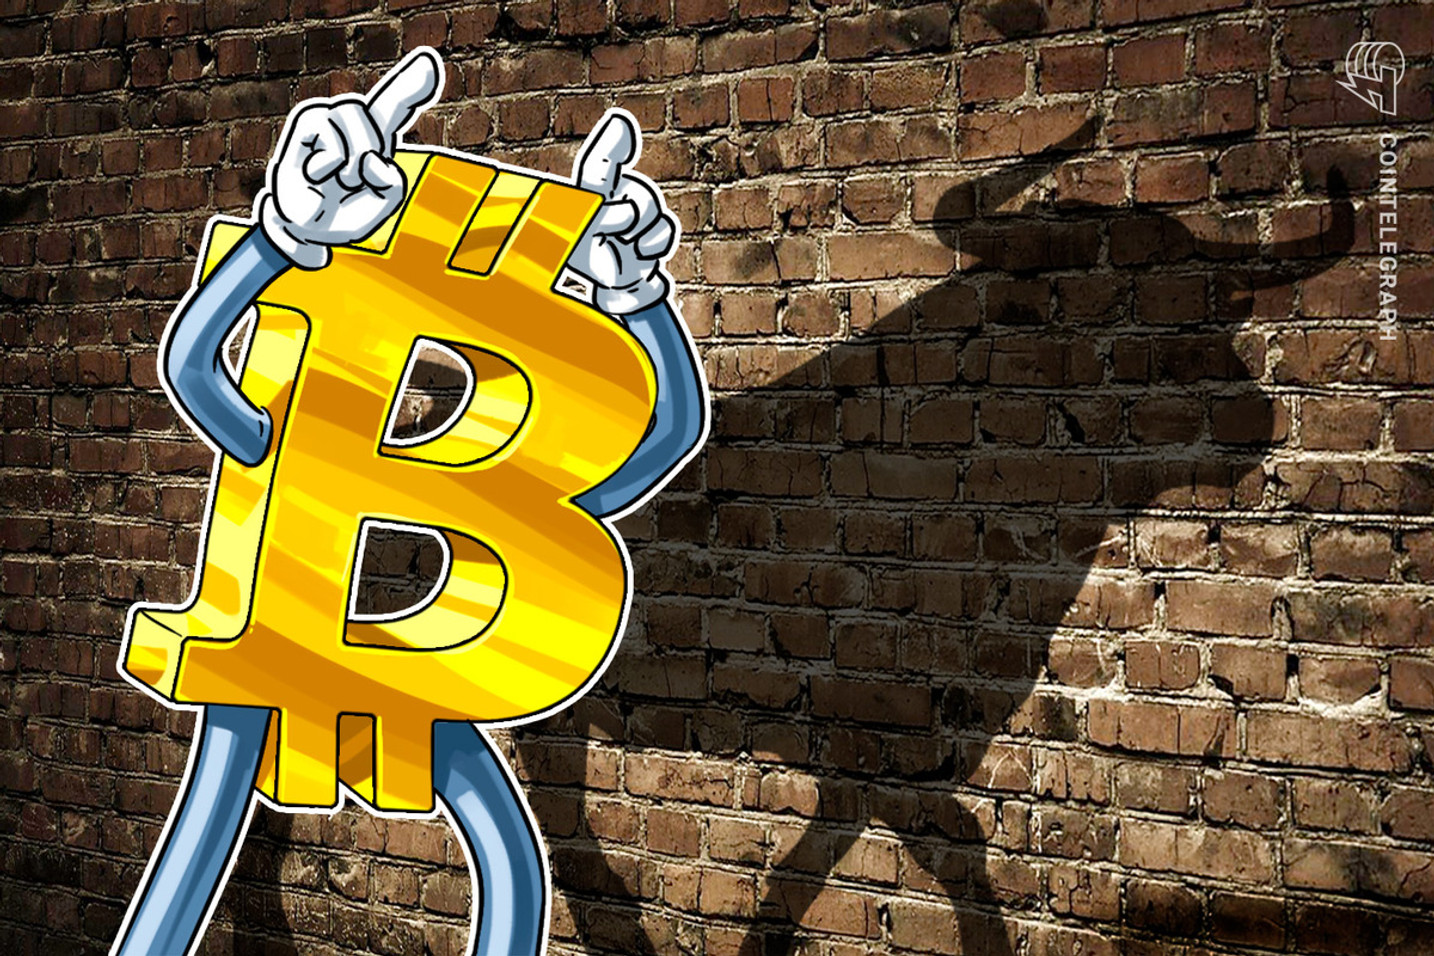 Bitcoin bull run is still in the early stages, key on-chain indicator shows